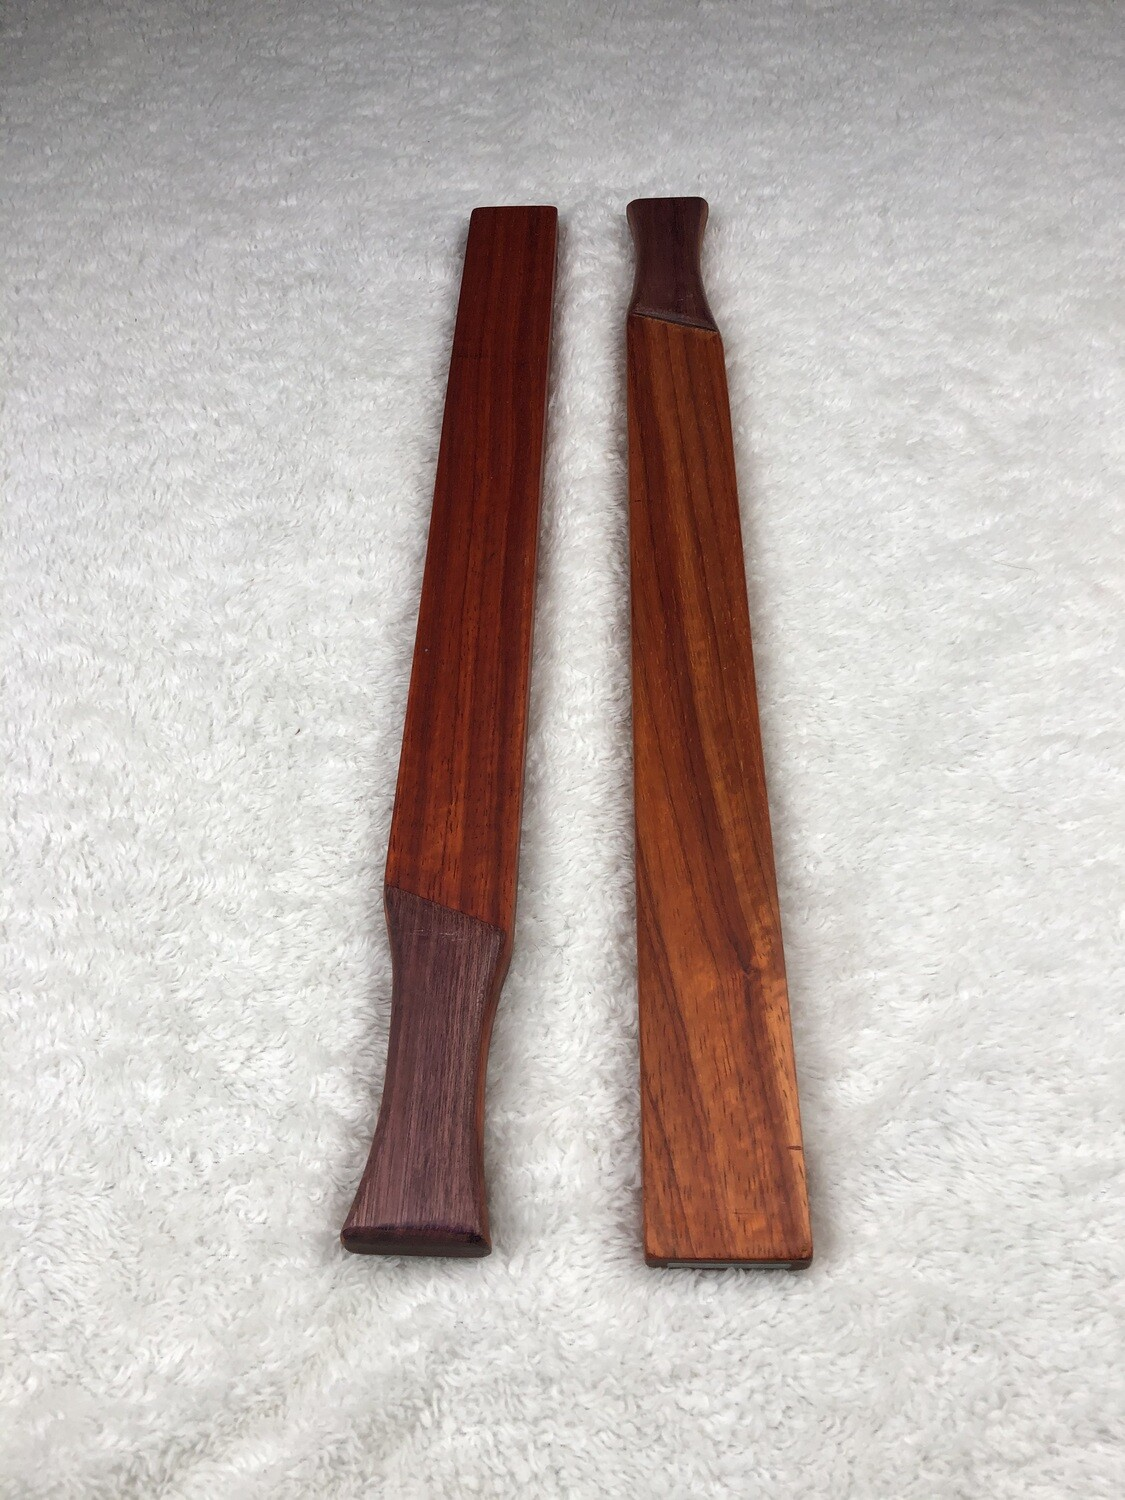 Tai Chi Sticks - 2.5 lbs - Padauk with Purple Heart Handles